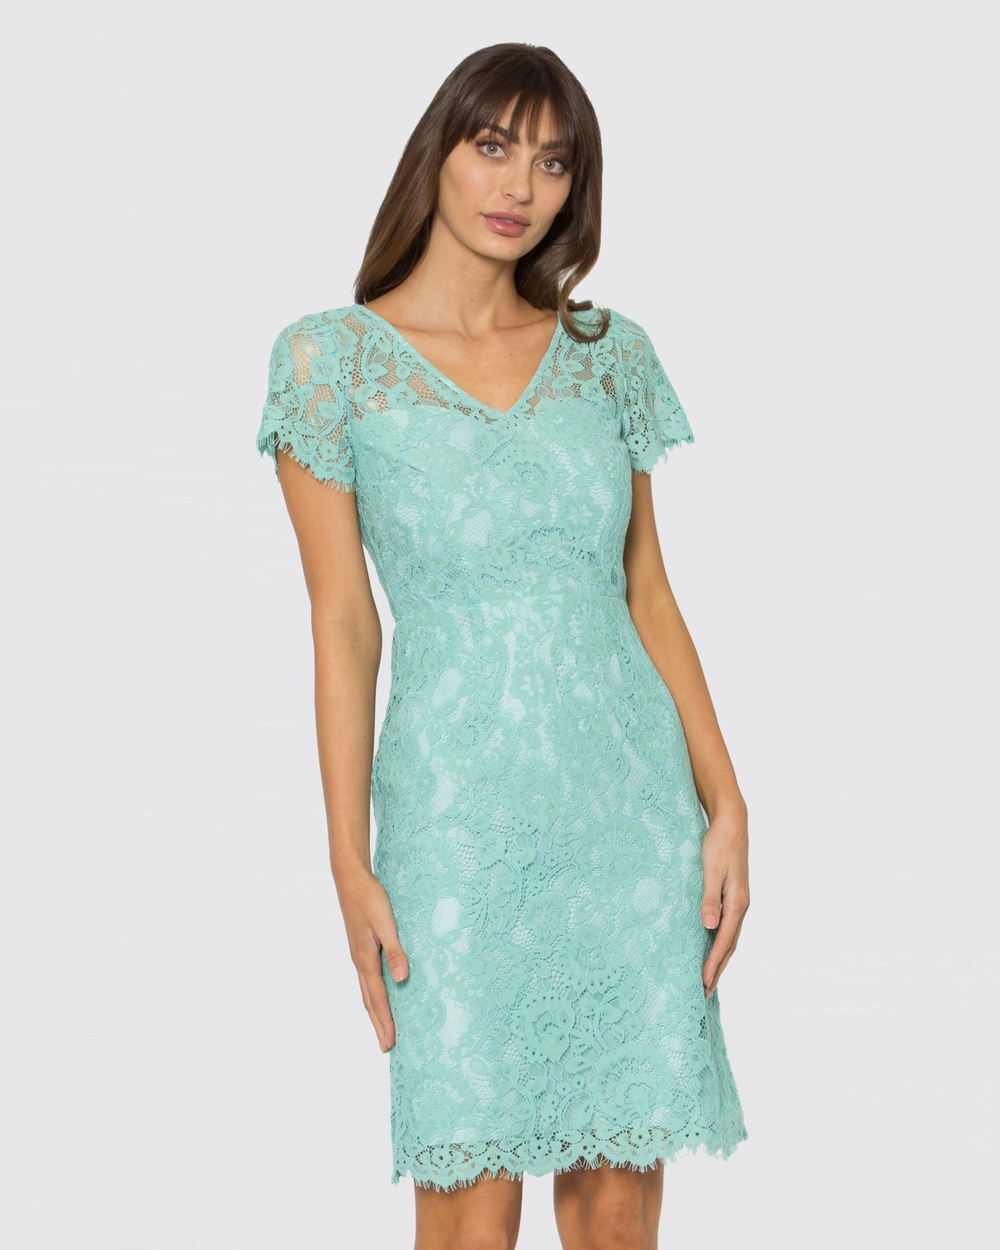 Alannah Hill Green Tail Feather Dress